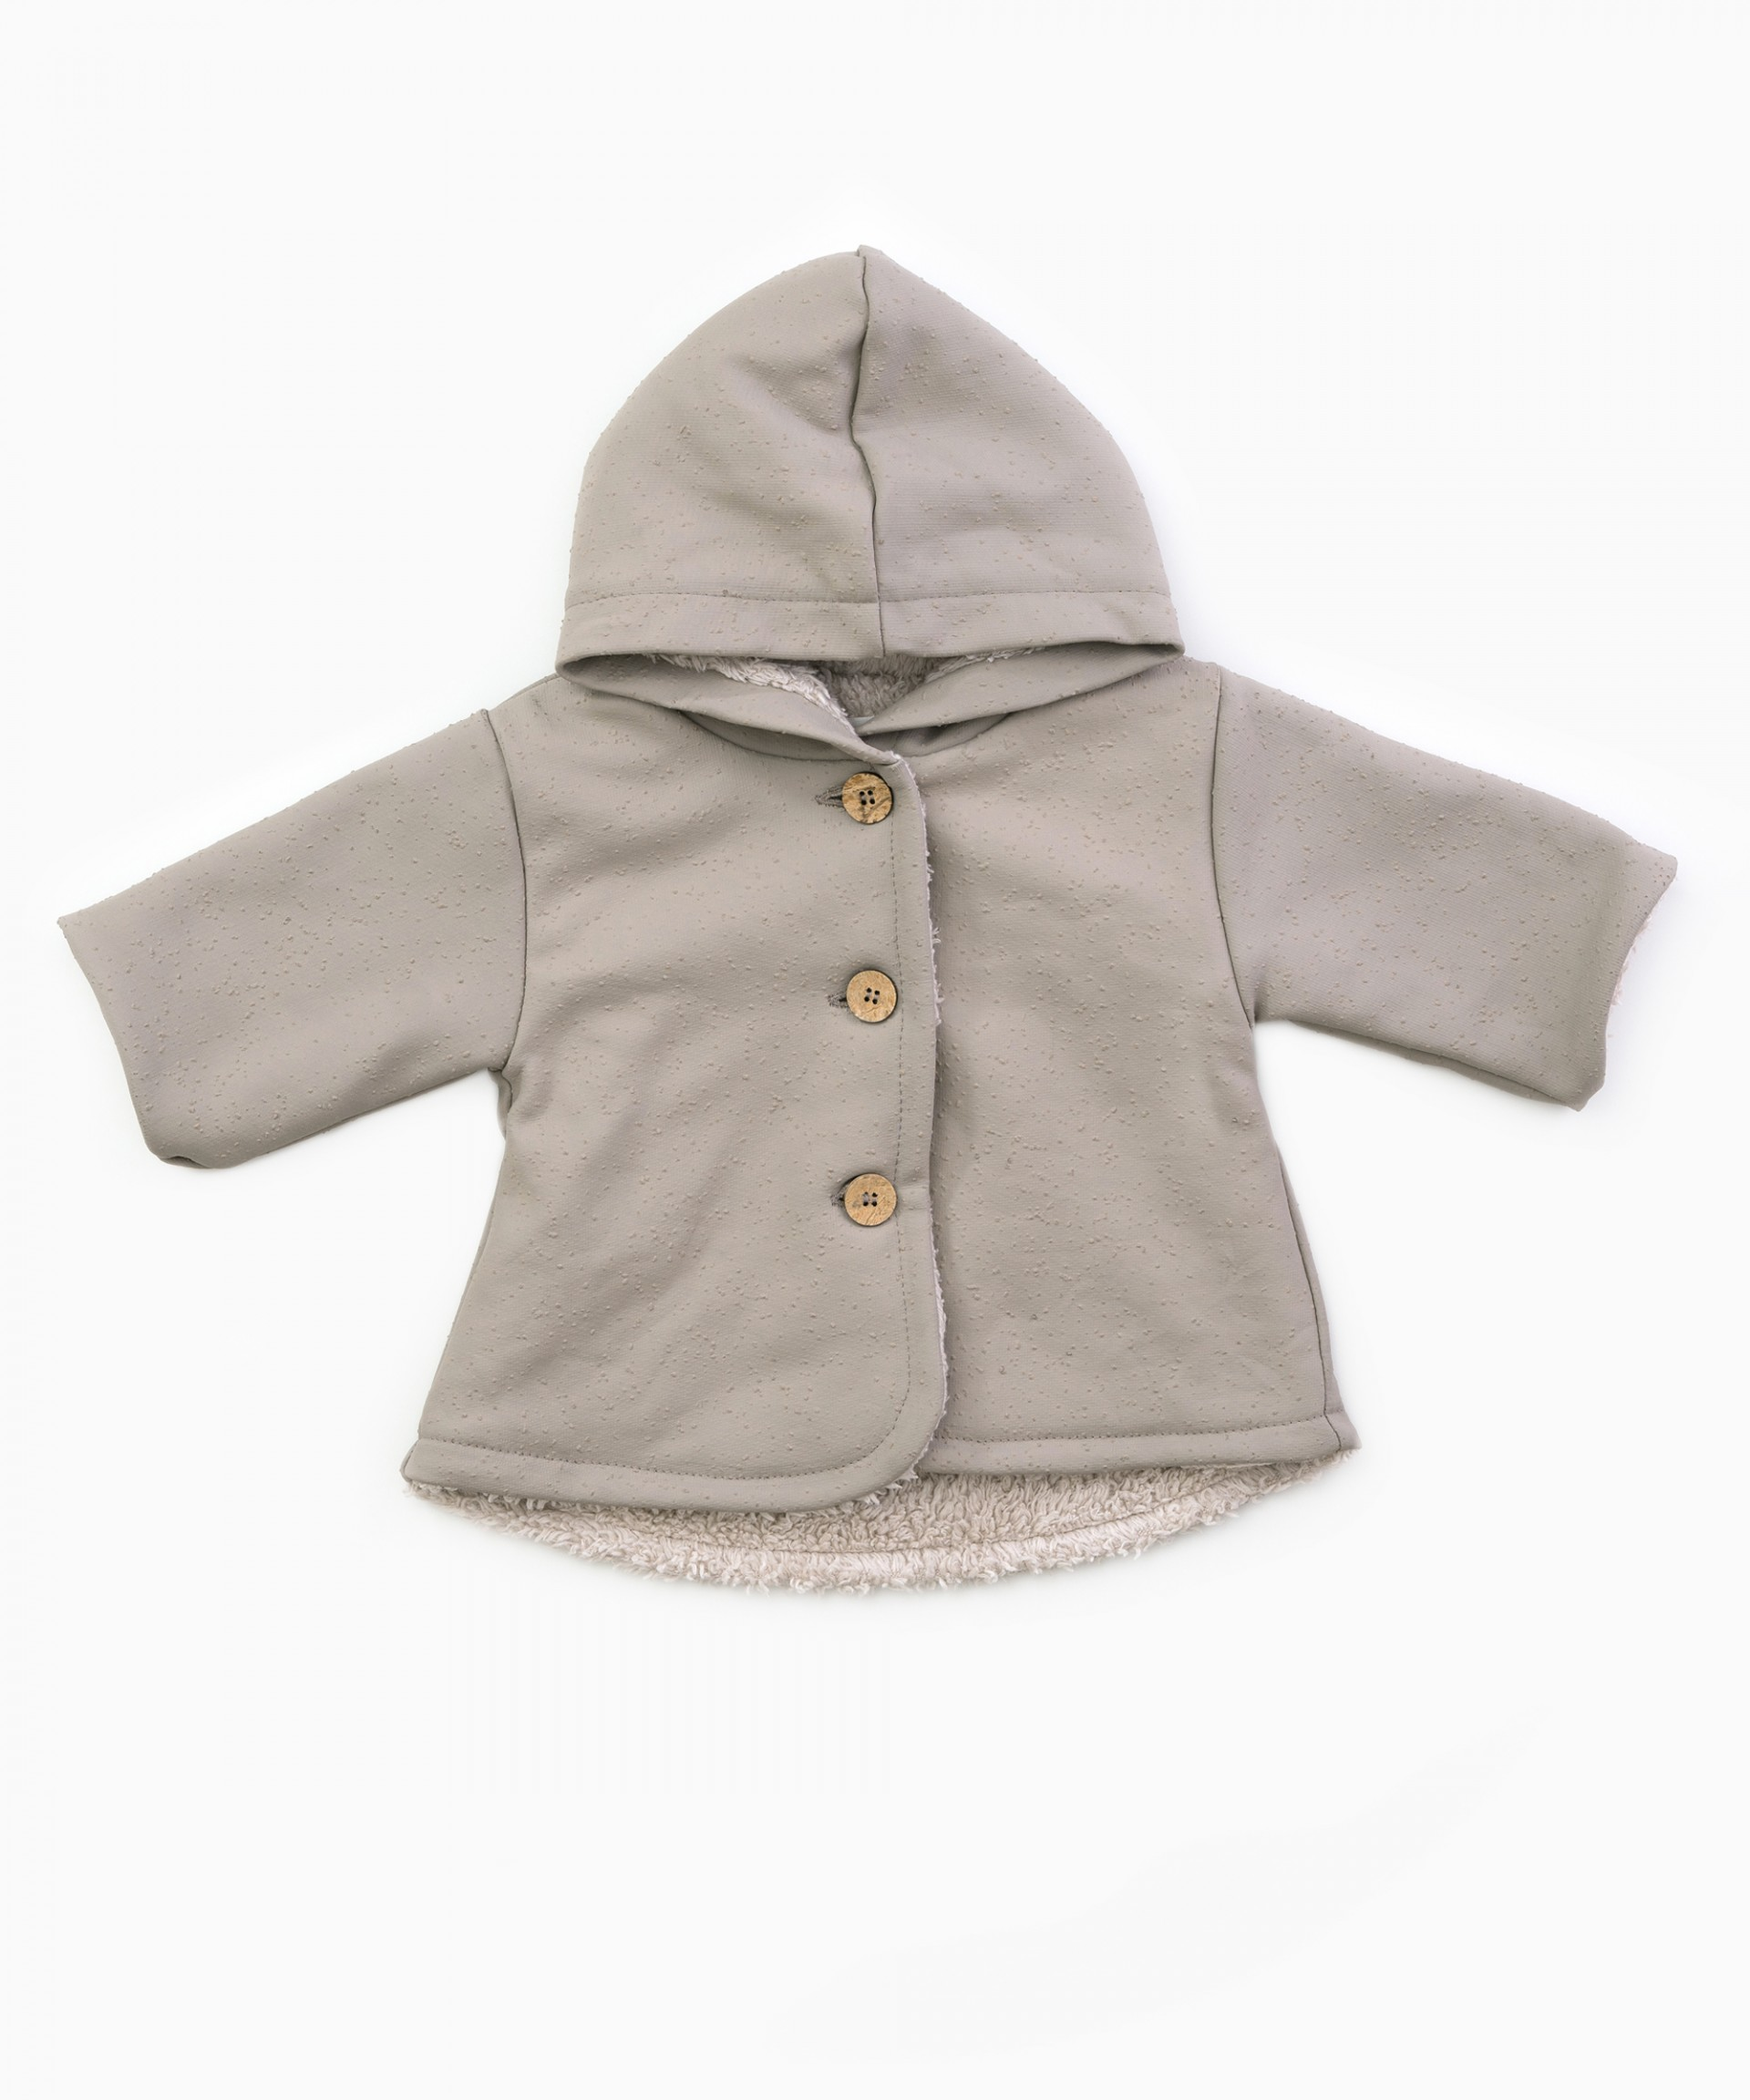 Waterproof hooded jacket with fur lining | Woodwork